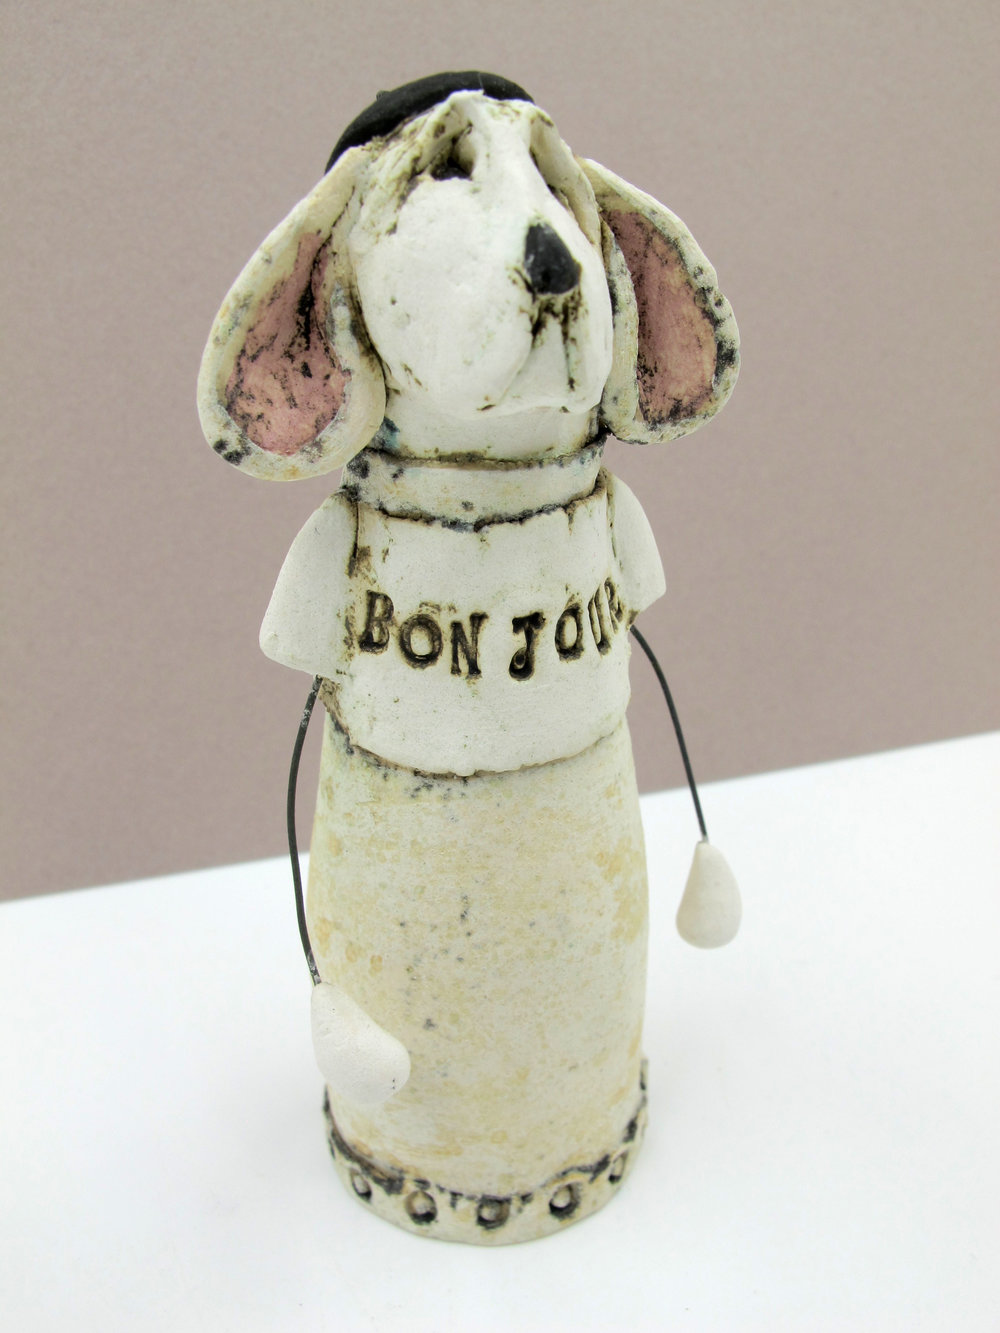 Playful ceramic sculptures by Jean Tolkovsky